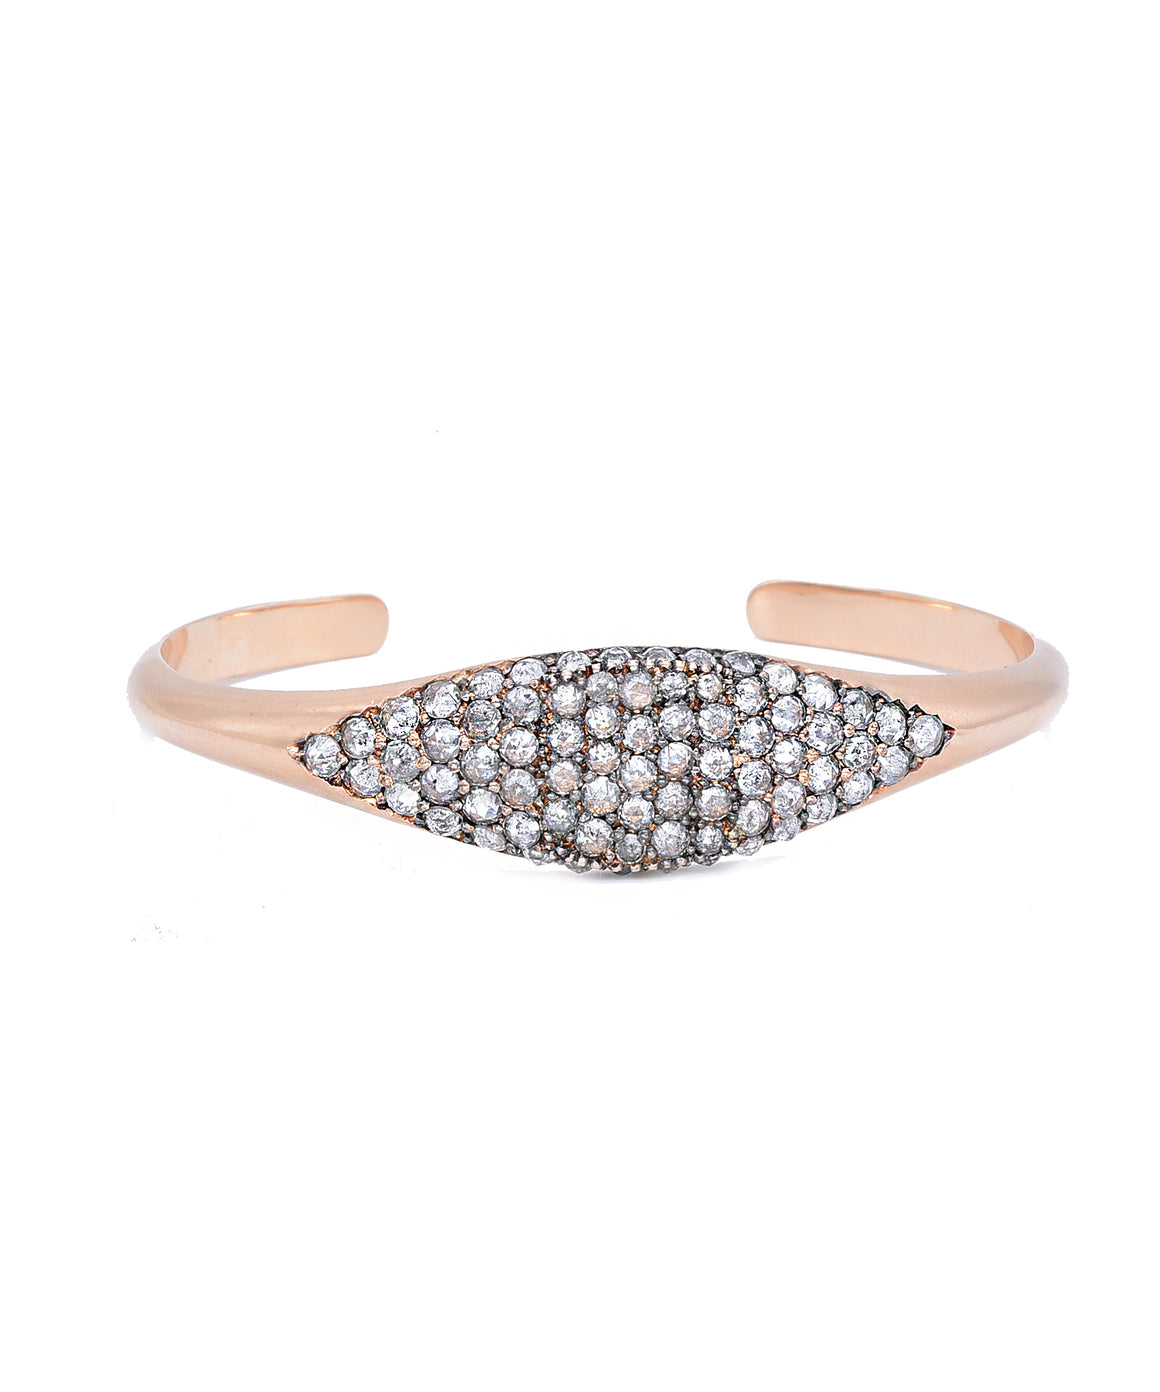 Grey diamond cuff in rose gold